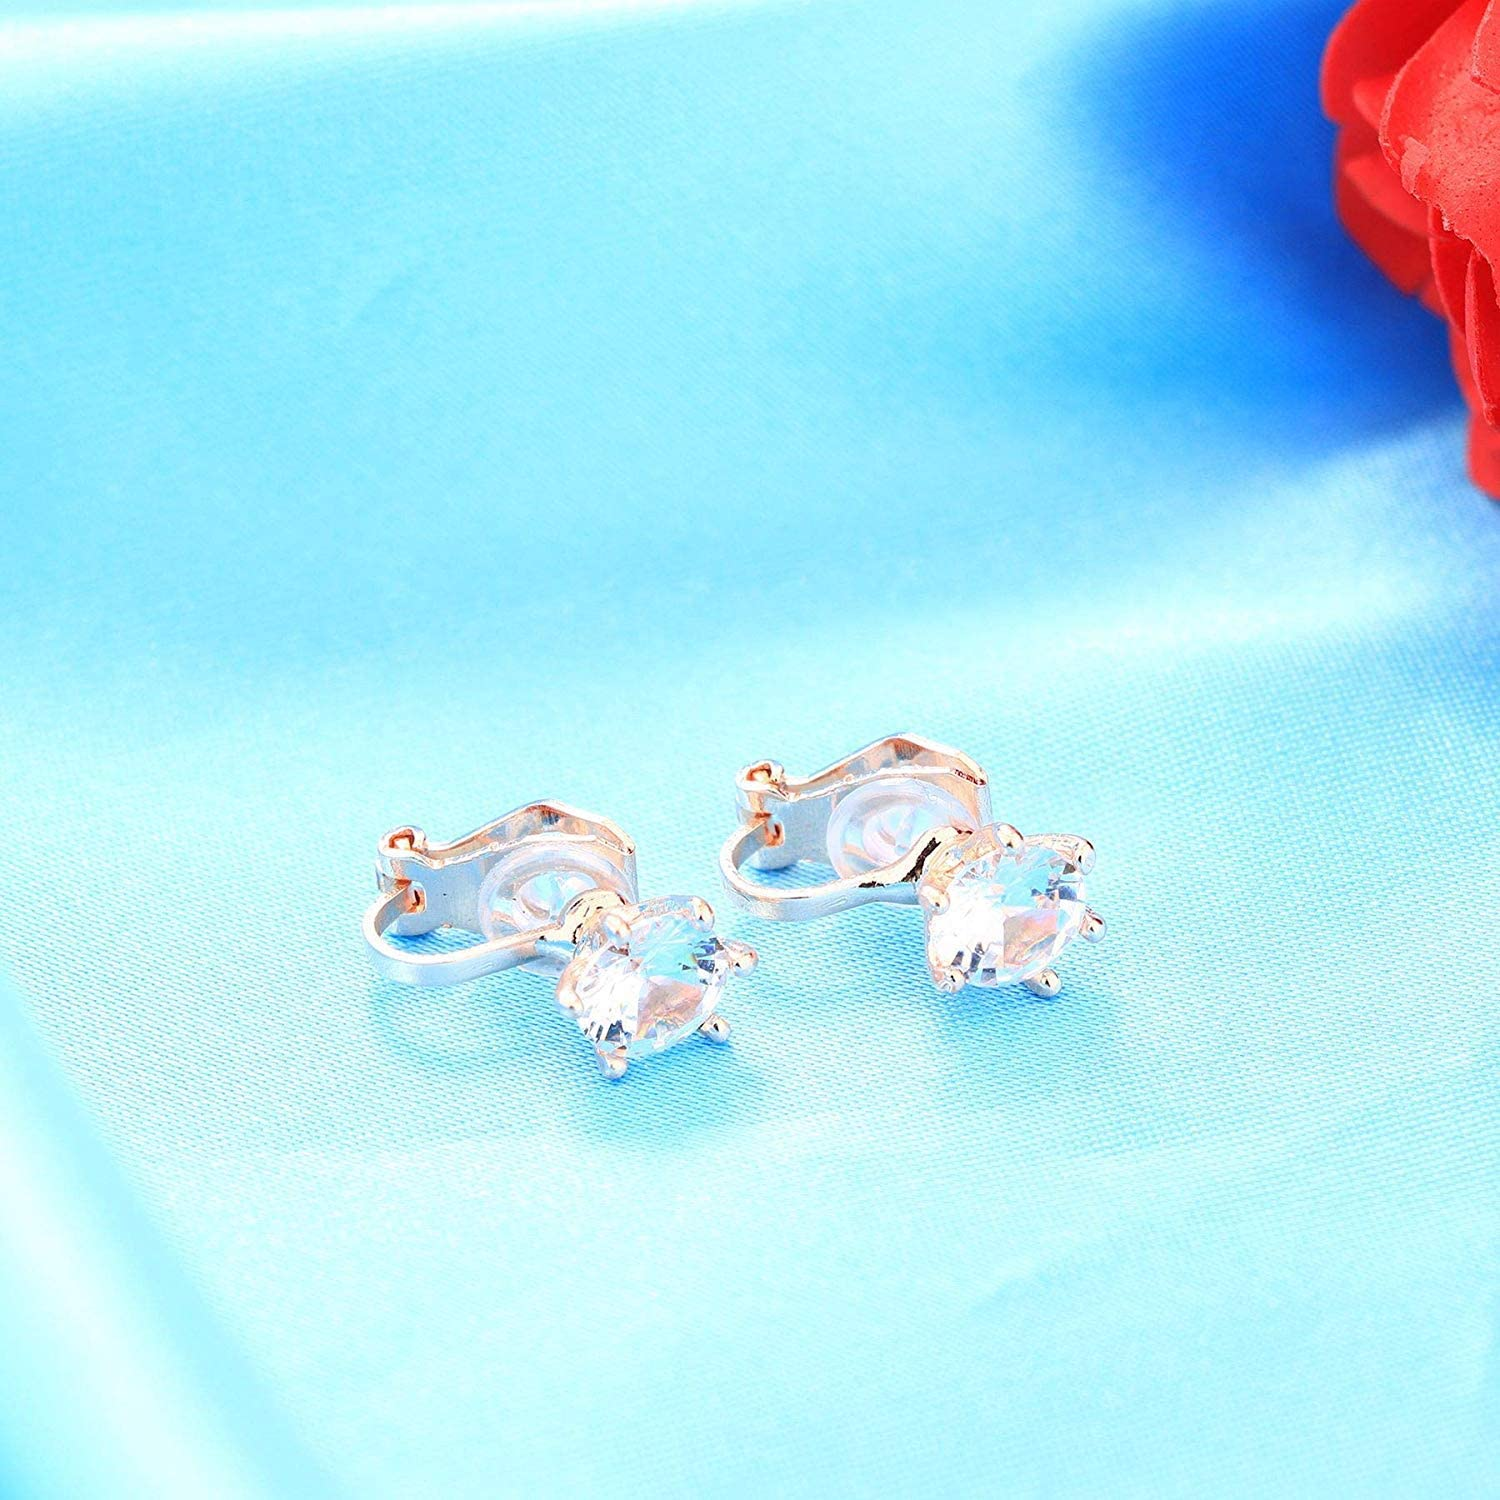 SAILIMUE 4 Pairs Clip Earrings Wedding Sets for Women Sparkly Cubic Zirconia Non Pierced Clip On Earrings